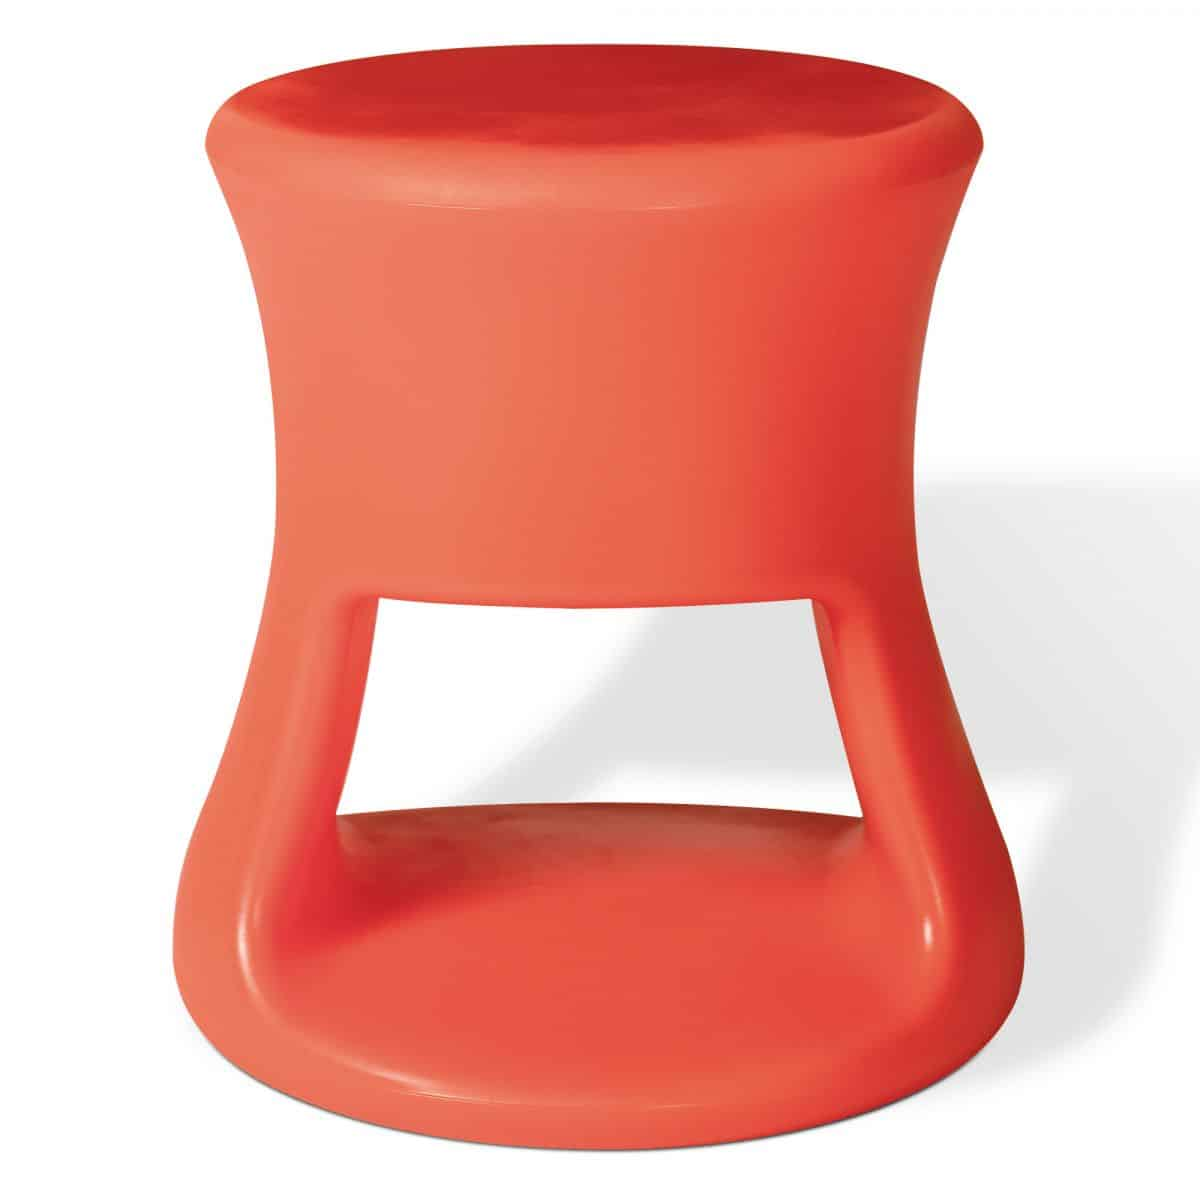 5 Modern Stools For Kids